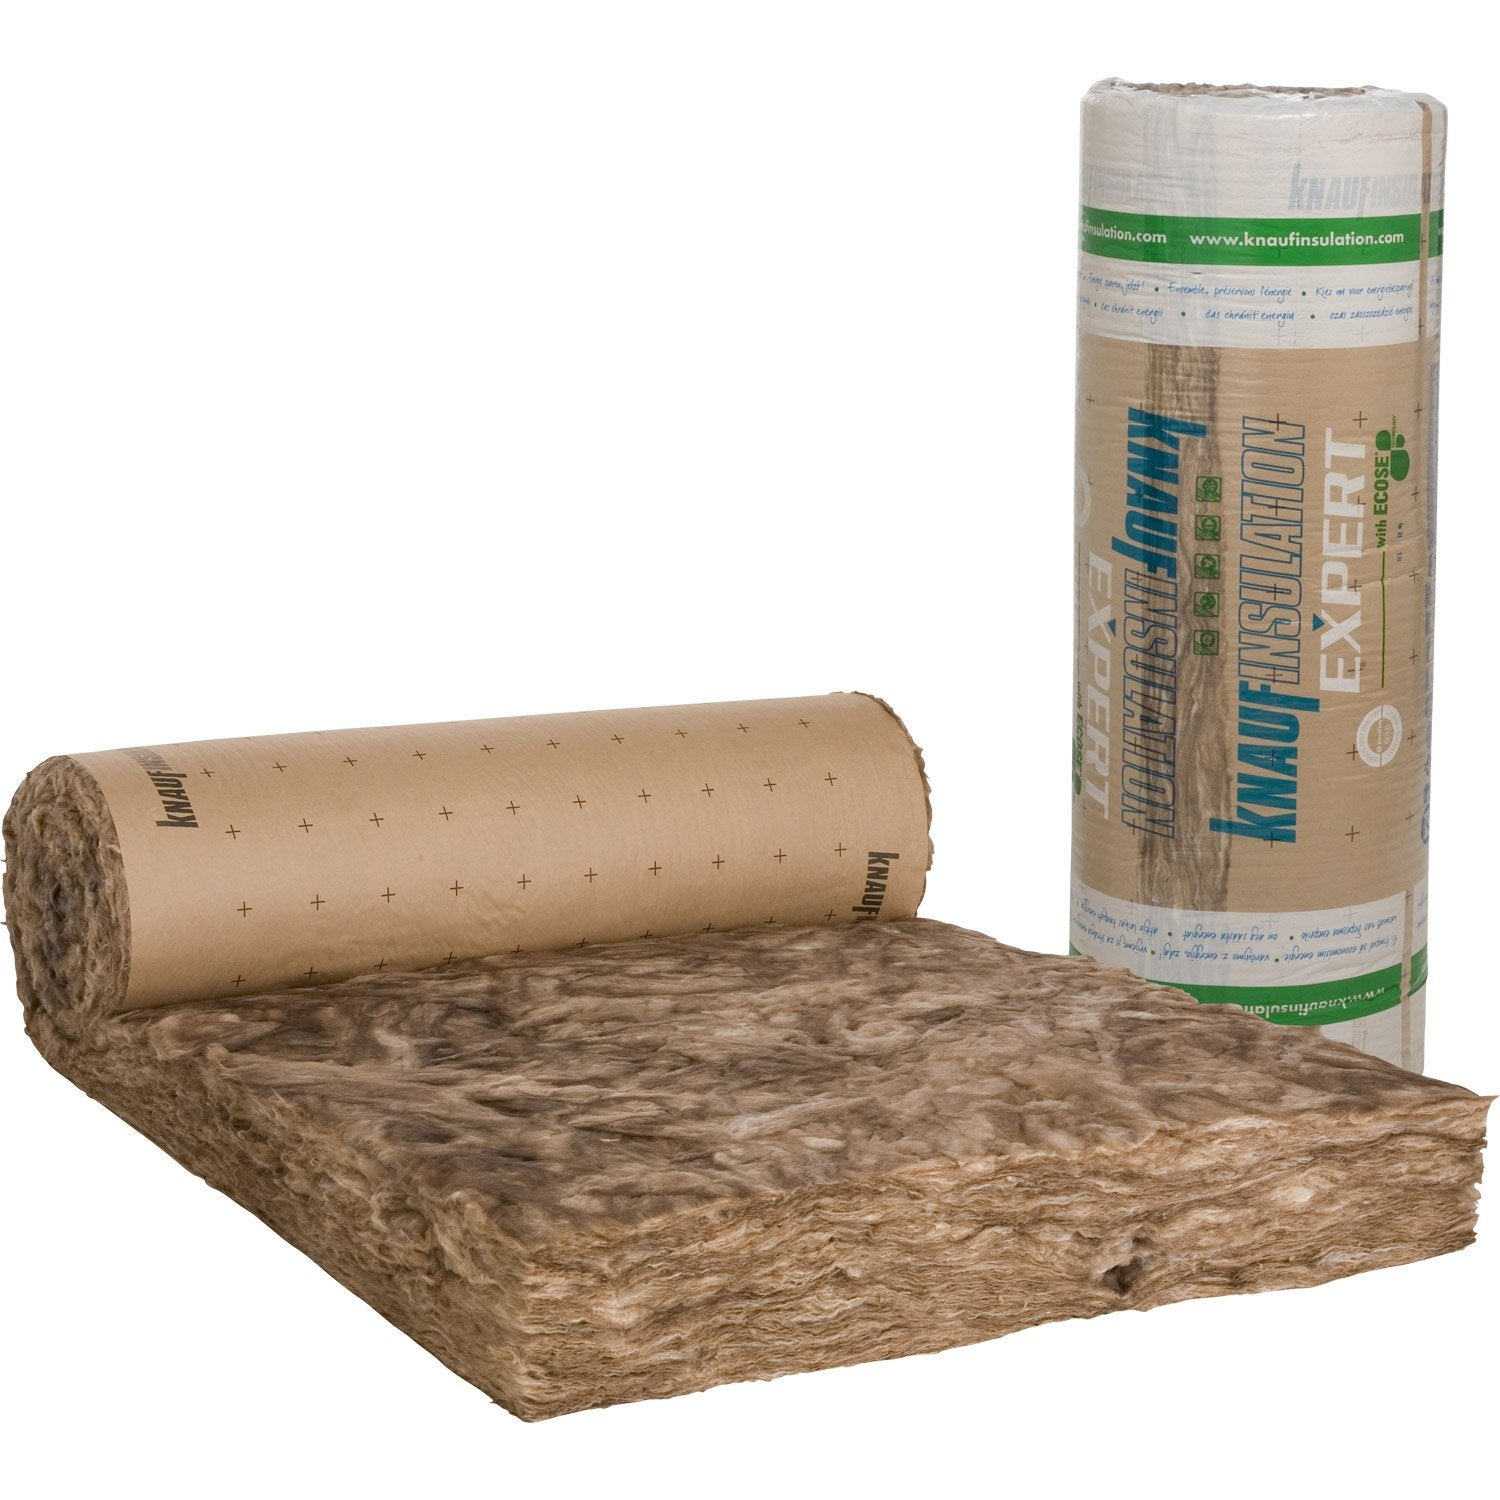 Laine de verre kraft knauf insulation 5 4 x 1 2 m ep 200 mm 040 r 5 ler - Isolation mur interieur leroy merlin ...